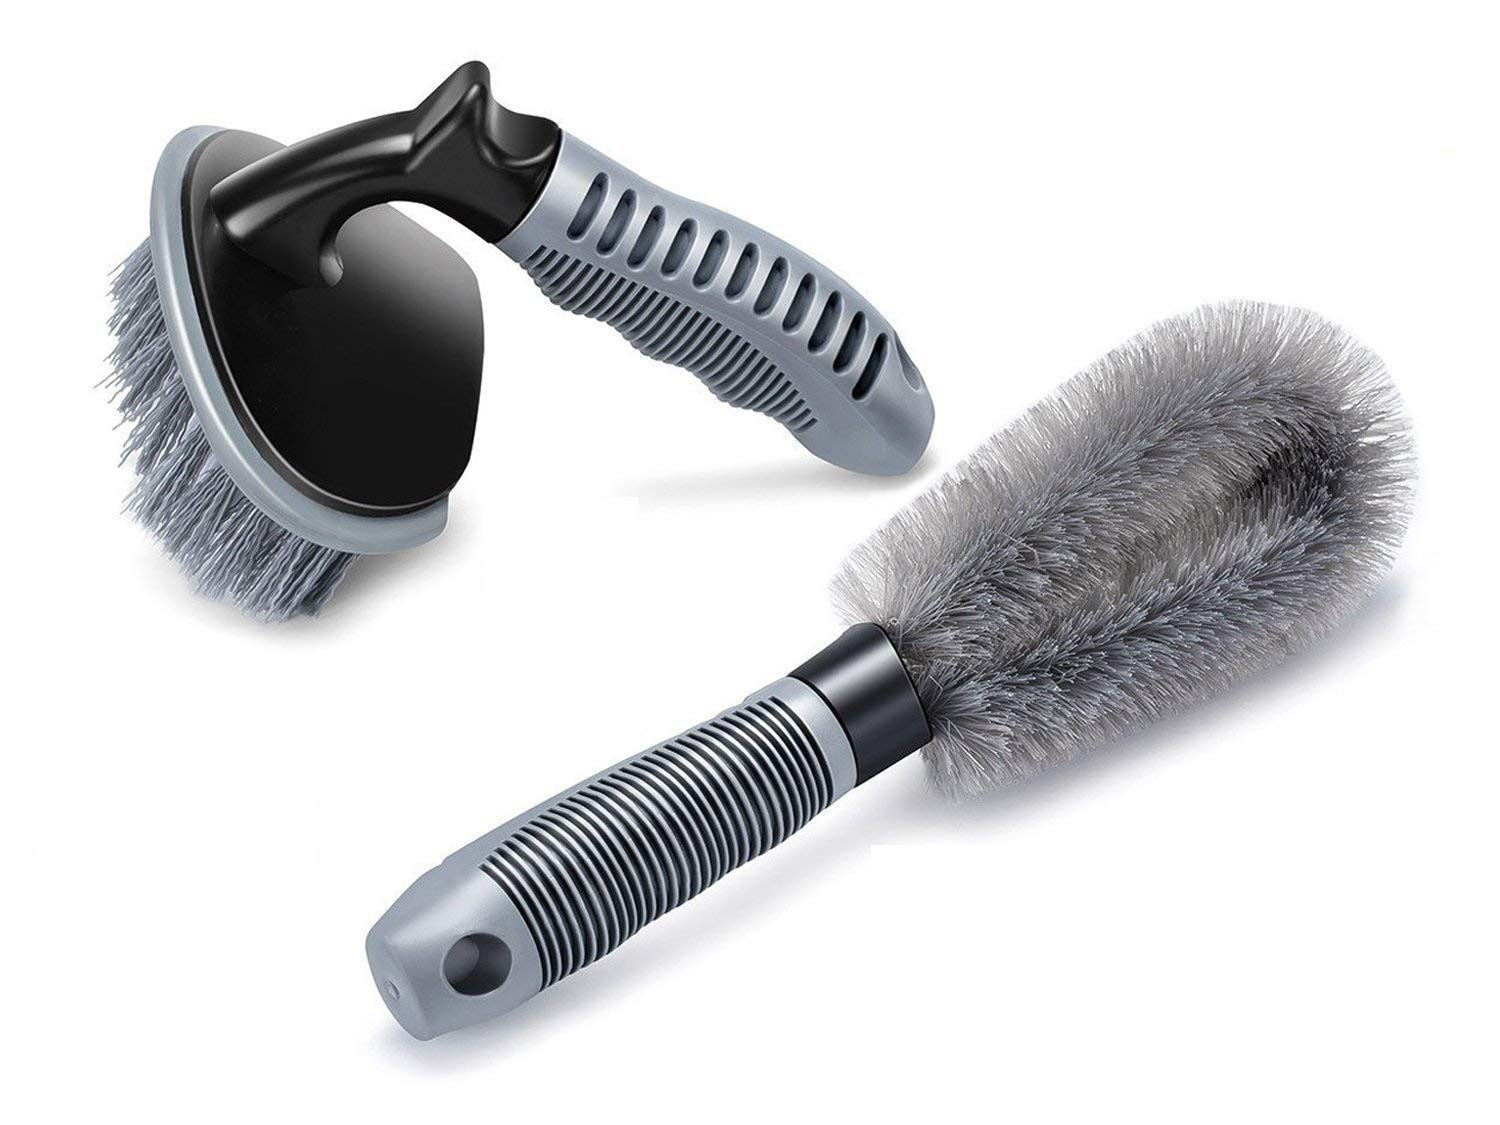 combo-of-2-pcs-brushes-tyre-cleaning-brush-for-cleaning-car-wheel-hub-and-wheel-tyre-rim-scrub-brush-hub-clean-wash-useful-brush-car-truck-motorcycle-bike-washing-cleaning-tool-set-of-2-brushes